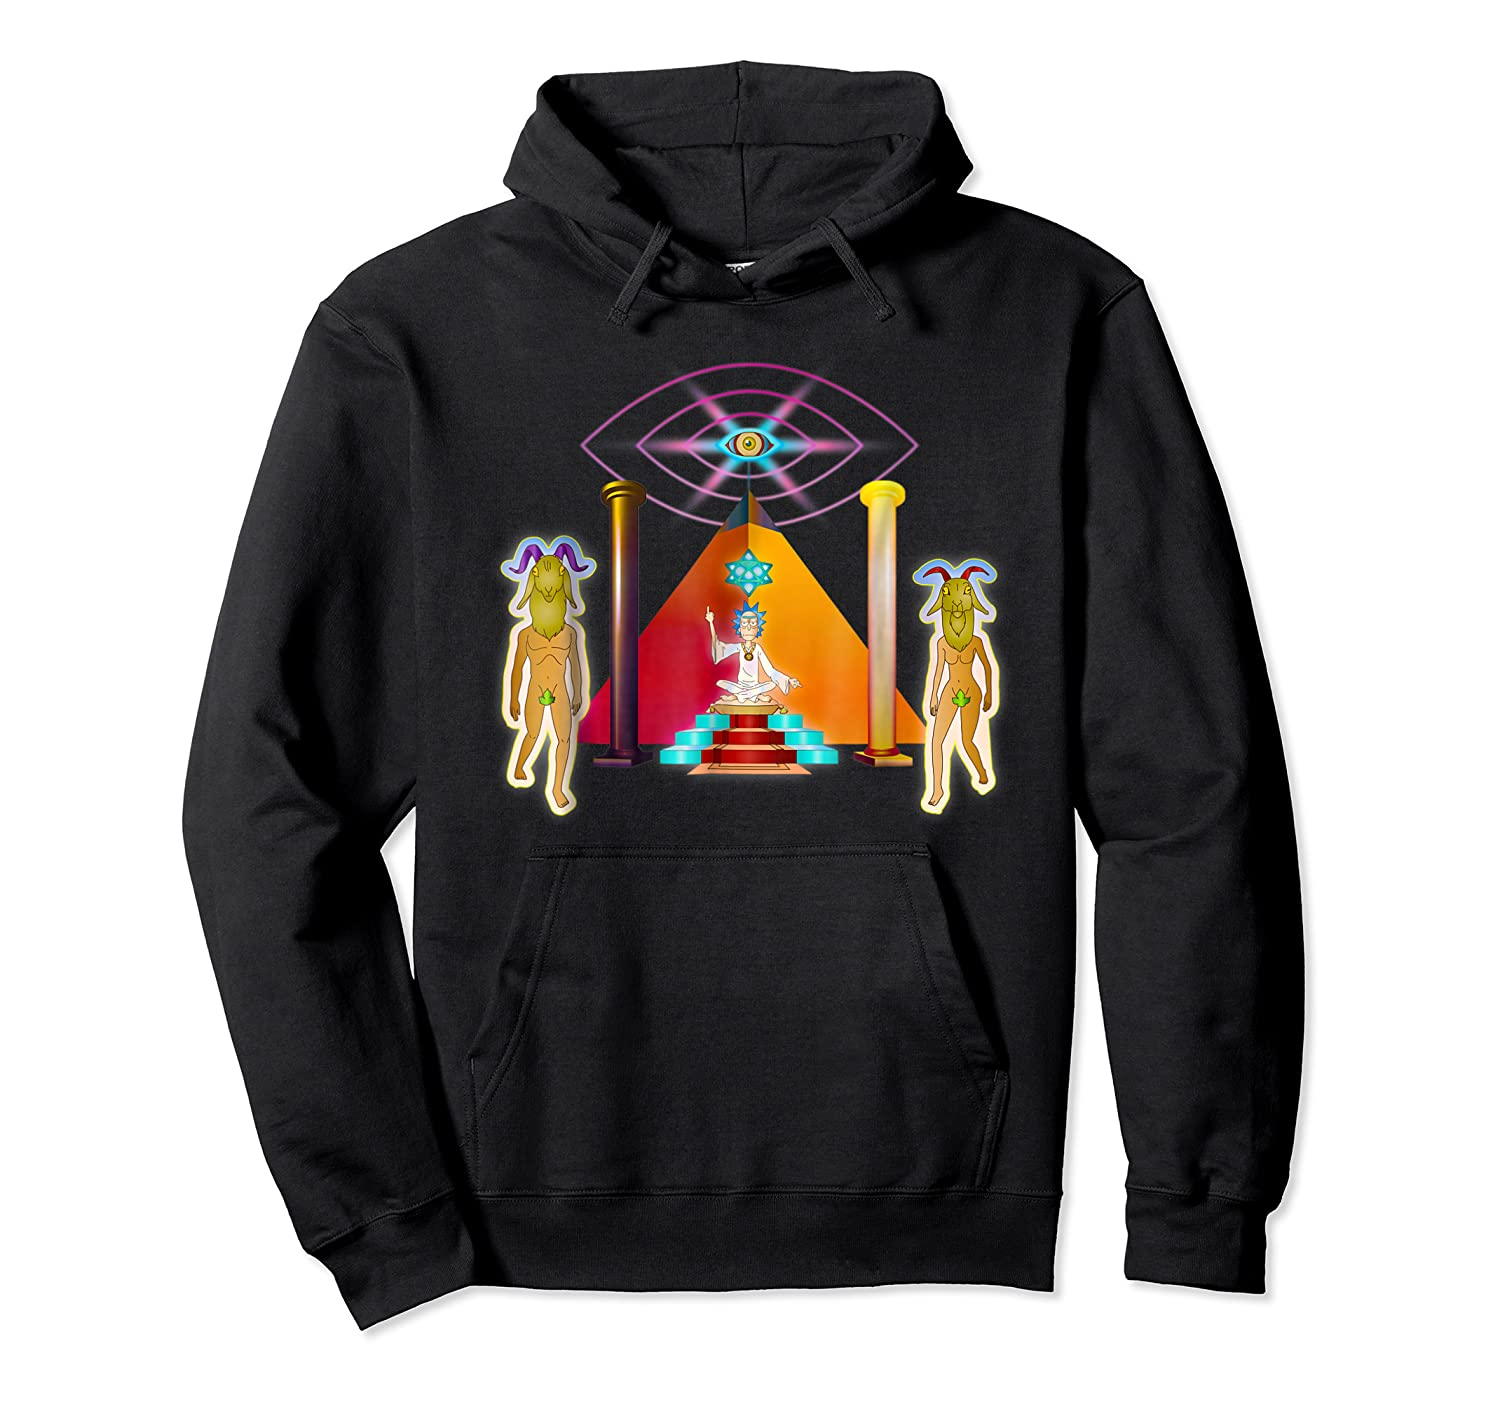 Rick And Morty Holy Rick Shirts Unisex Pullover Hoodie